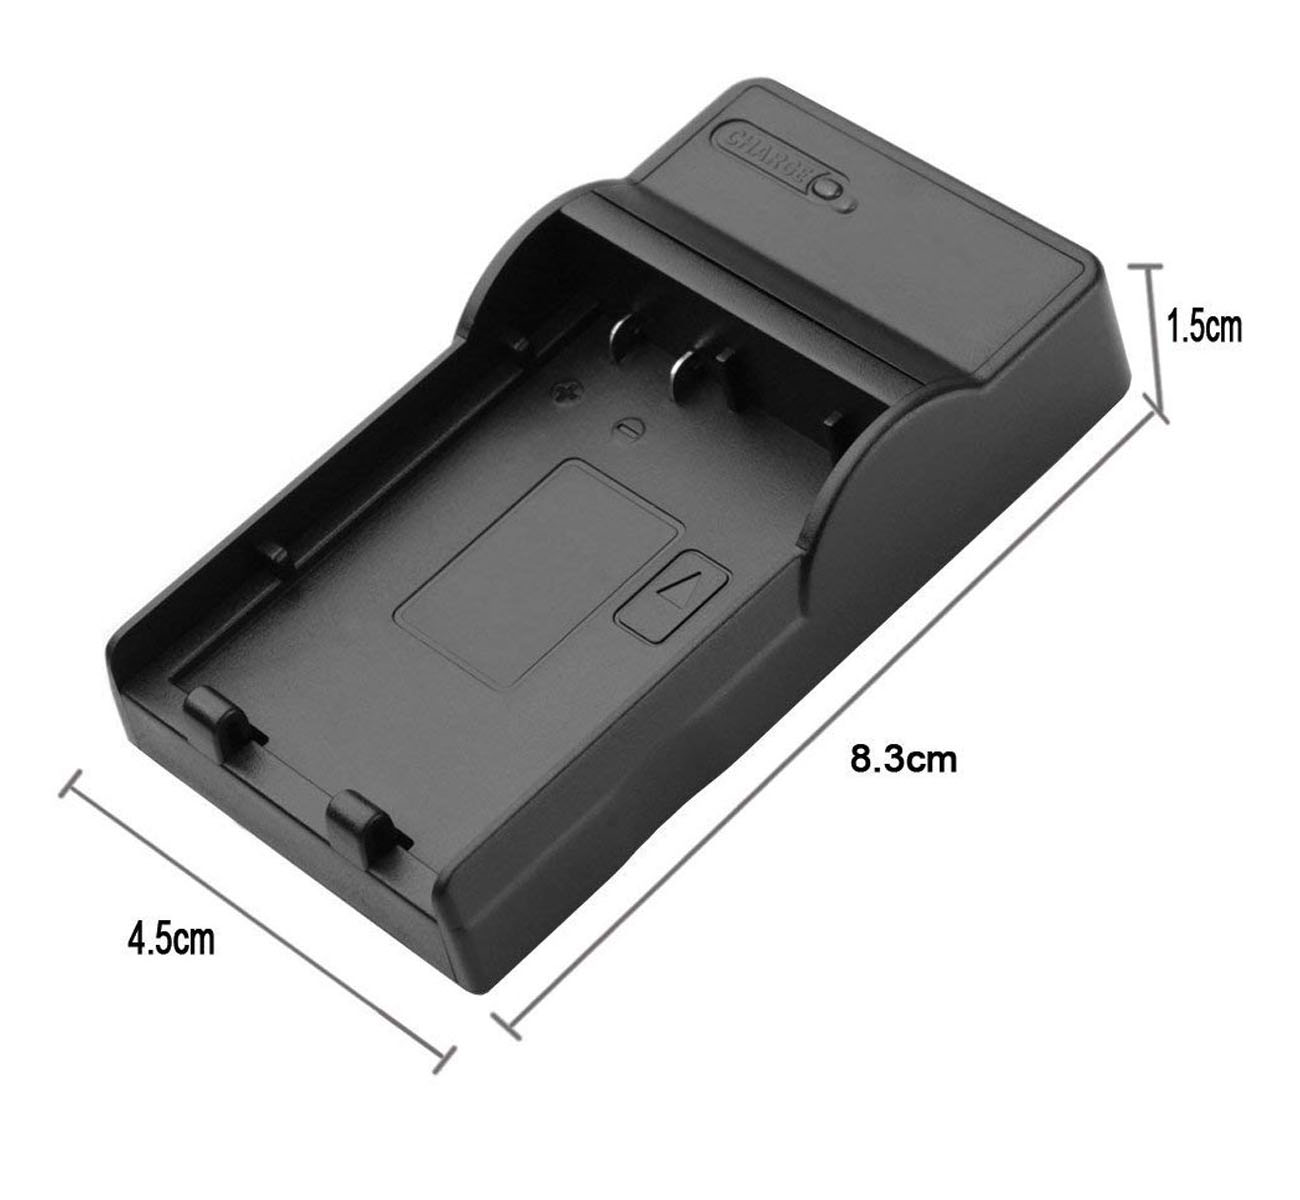 Battery Pack Charger for Samsung SCD101 SCD103 SCD105 SCD107 SCD180 Digital Video Camcorder